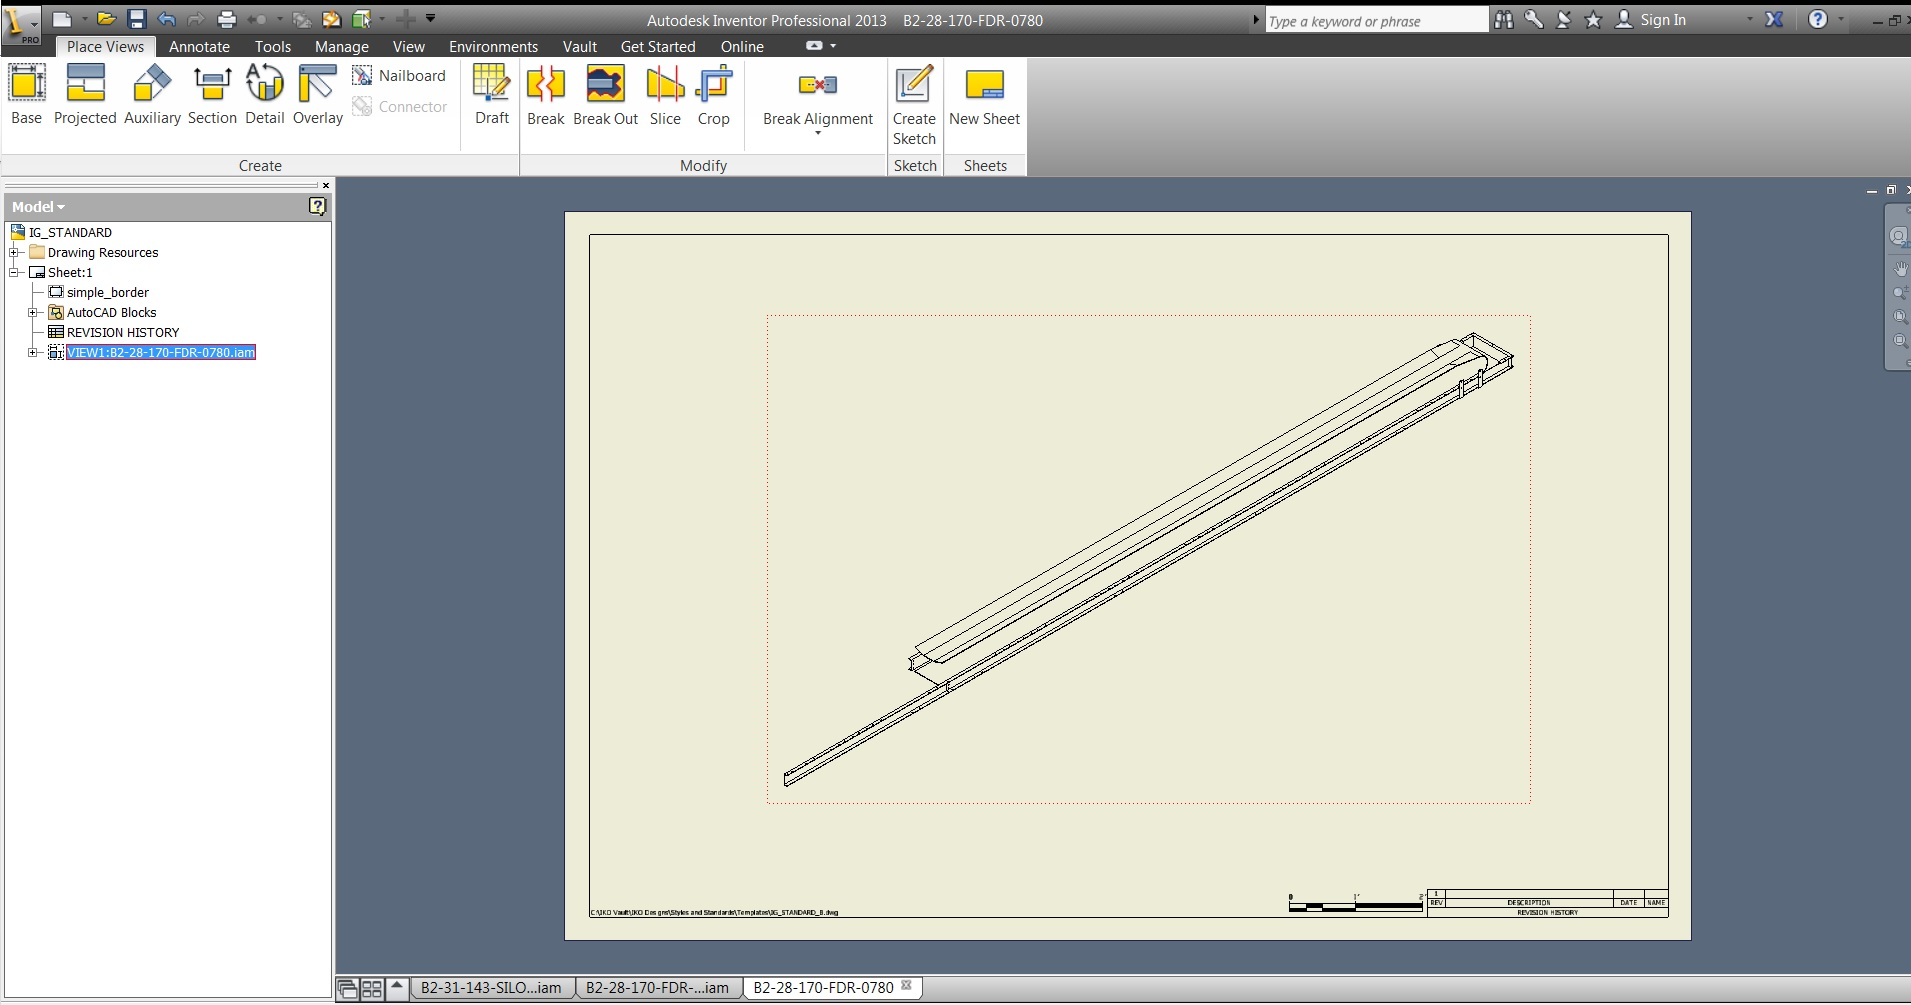 Autodesk inventor professional 2013 free download full